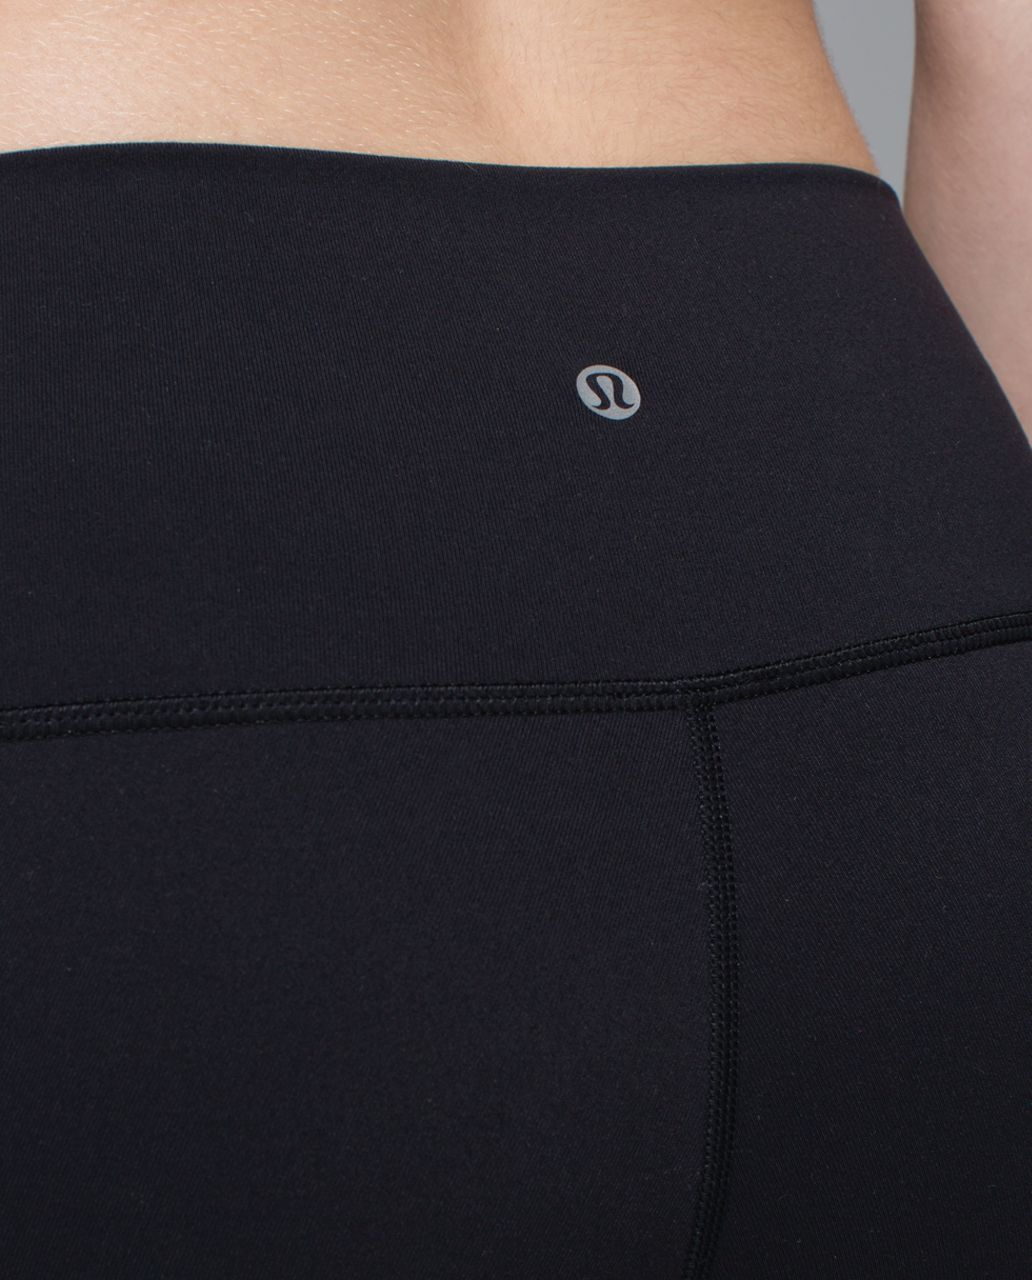 Lululemon High Times Pant *Wrap Mesh - Black